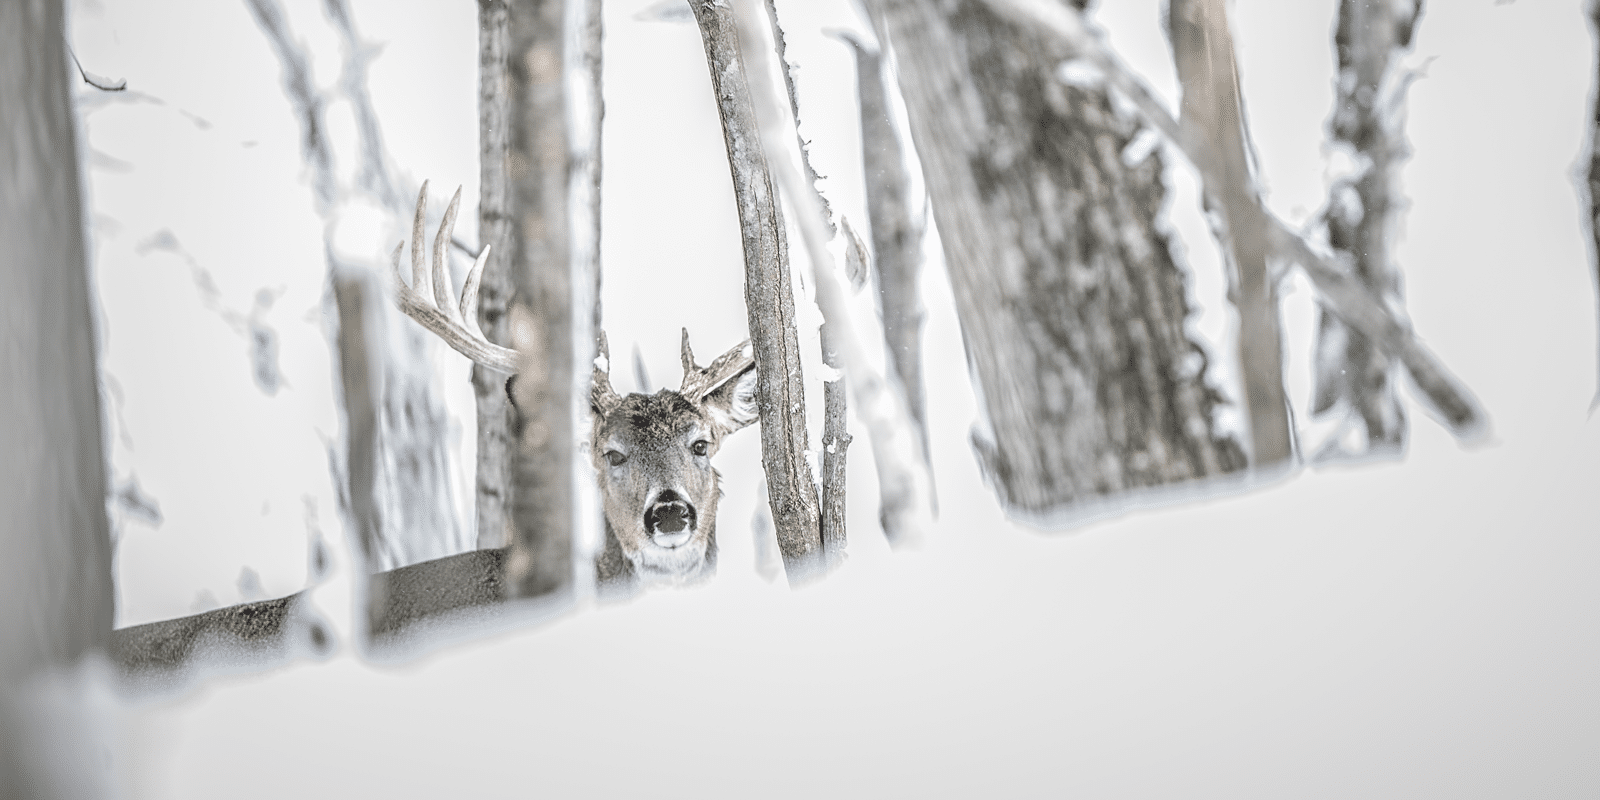 A buck peaking through snow trees